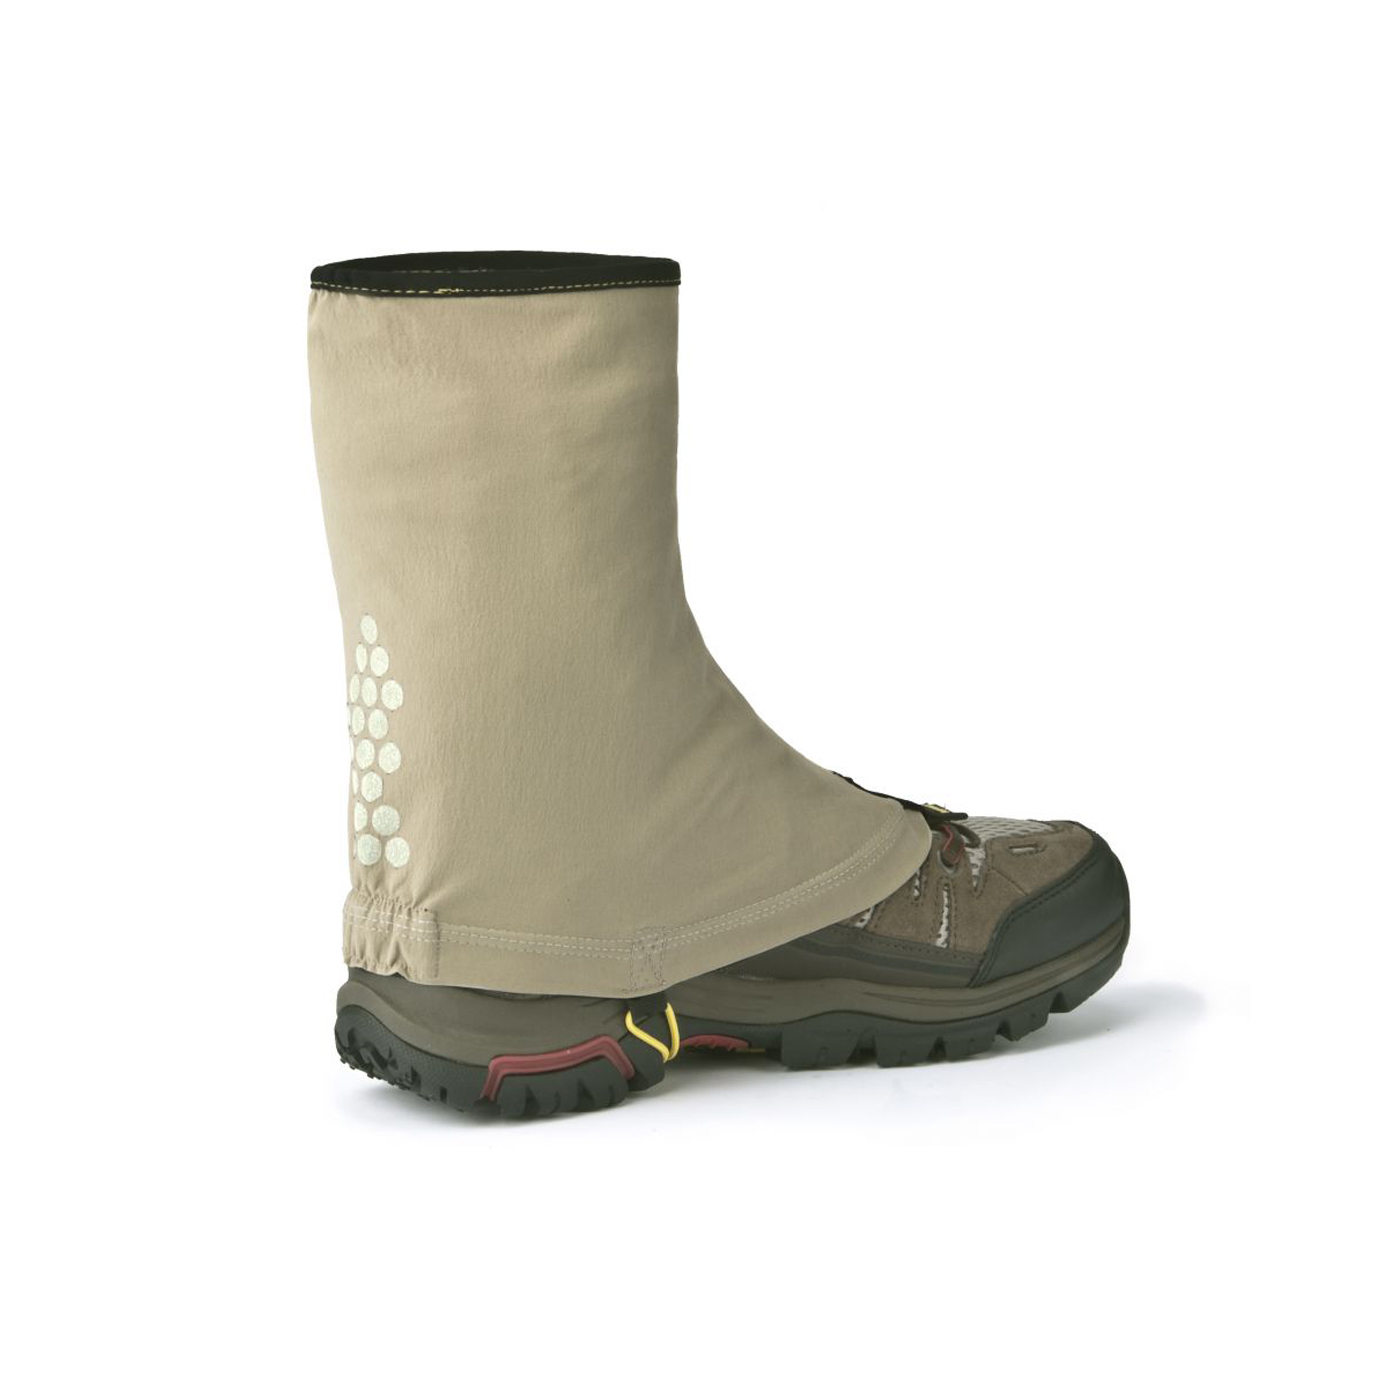 MOUNTAIN HARDWARE | Scree Gaiter